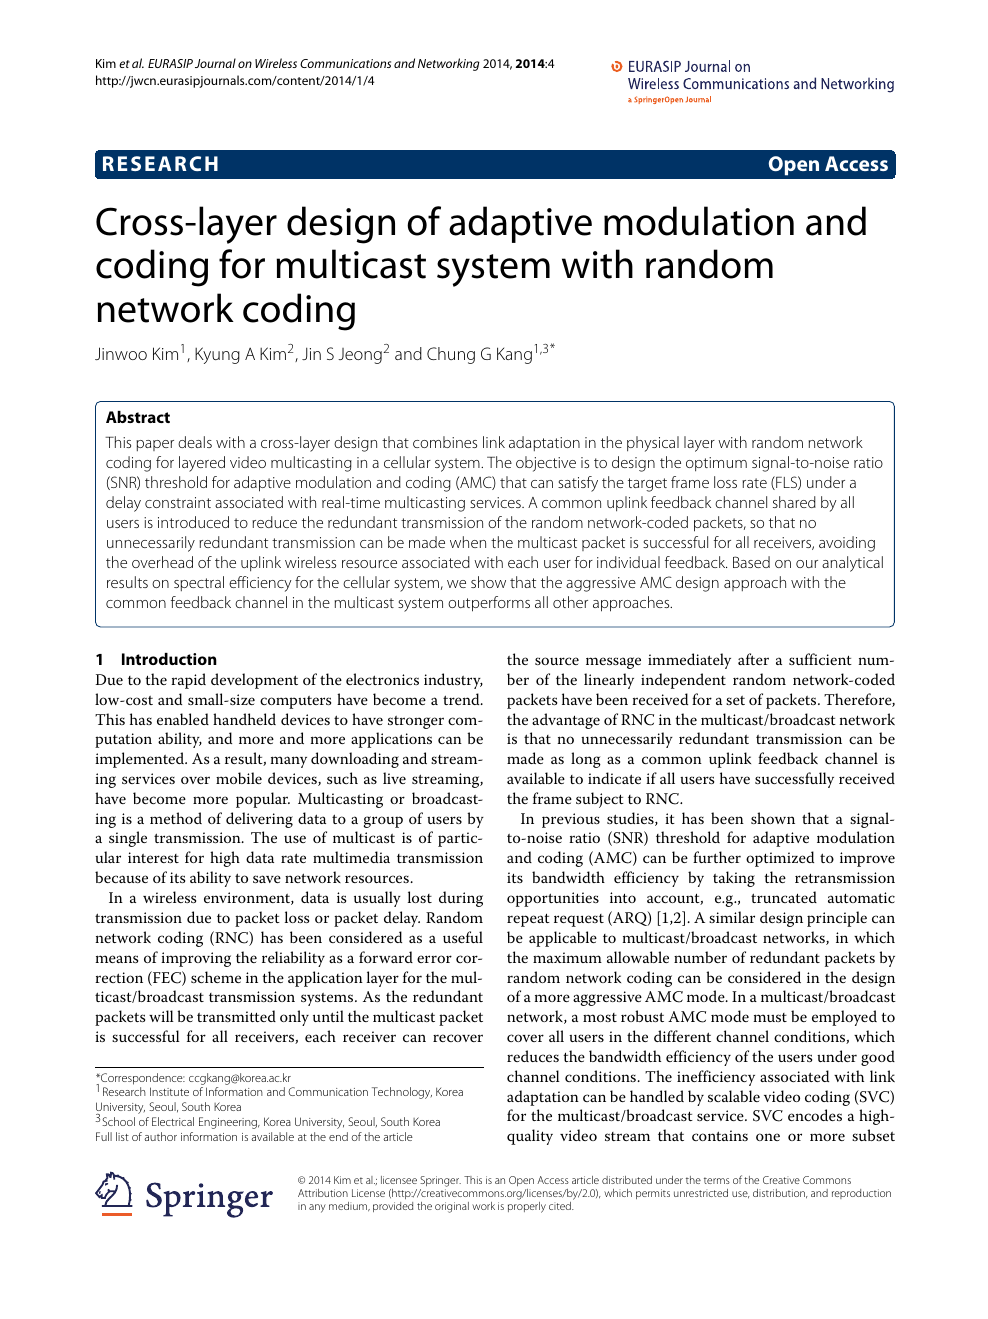 Cross-layer design of adaptive modulation and coding for